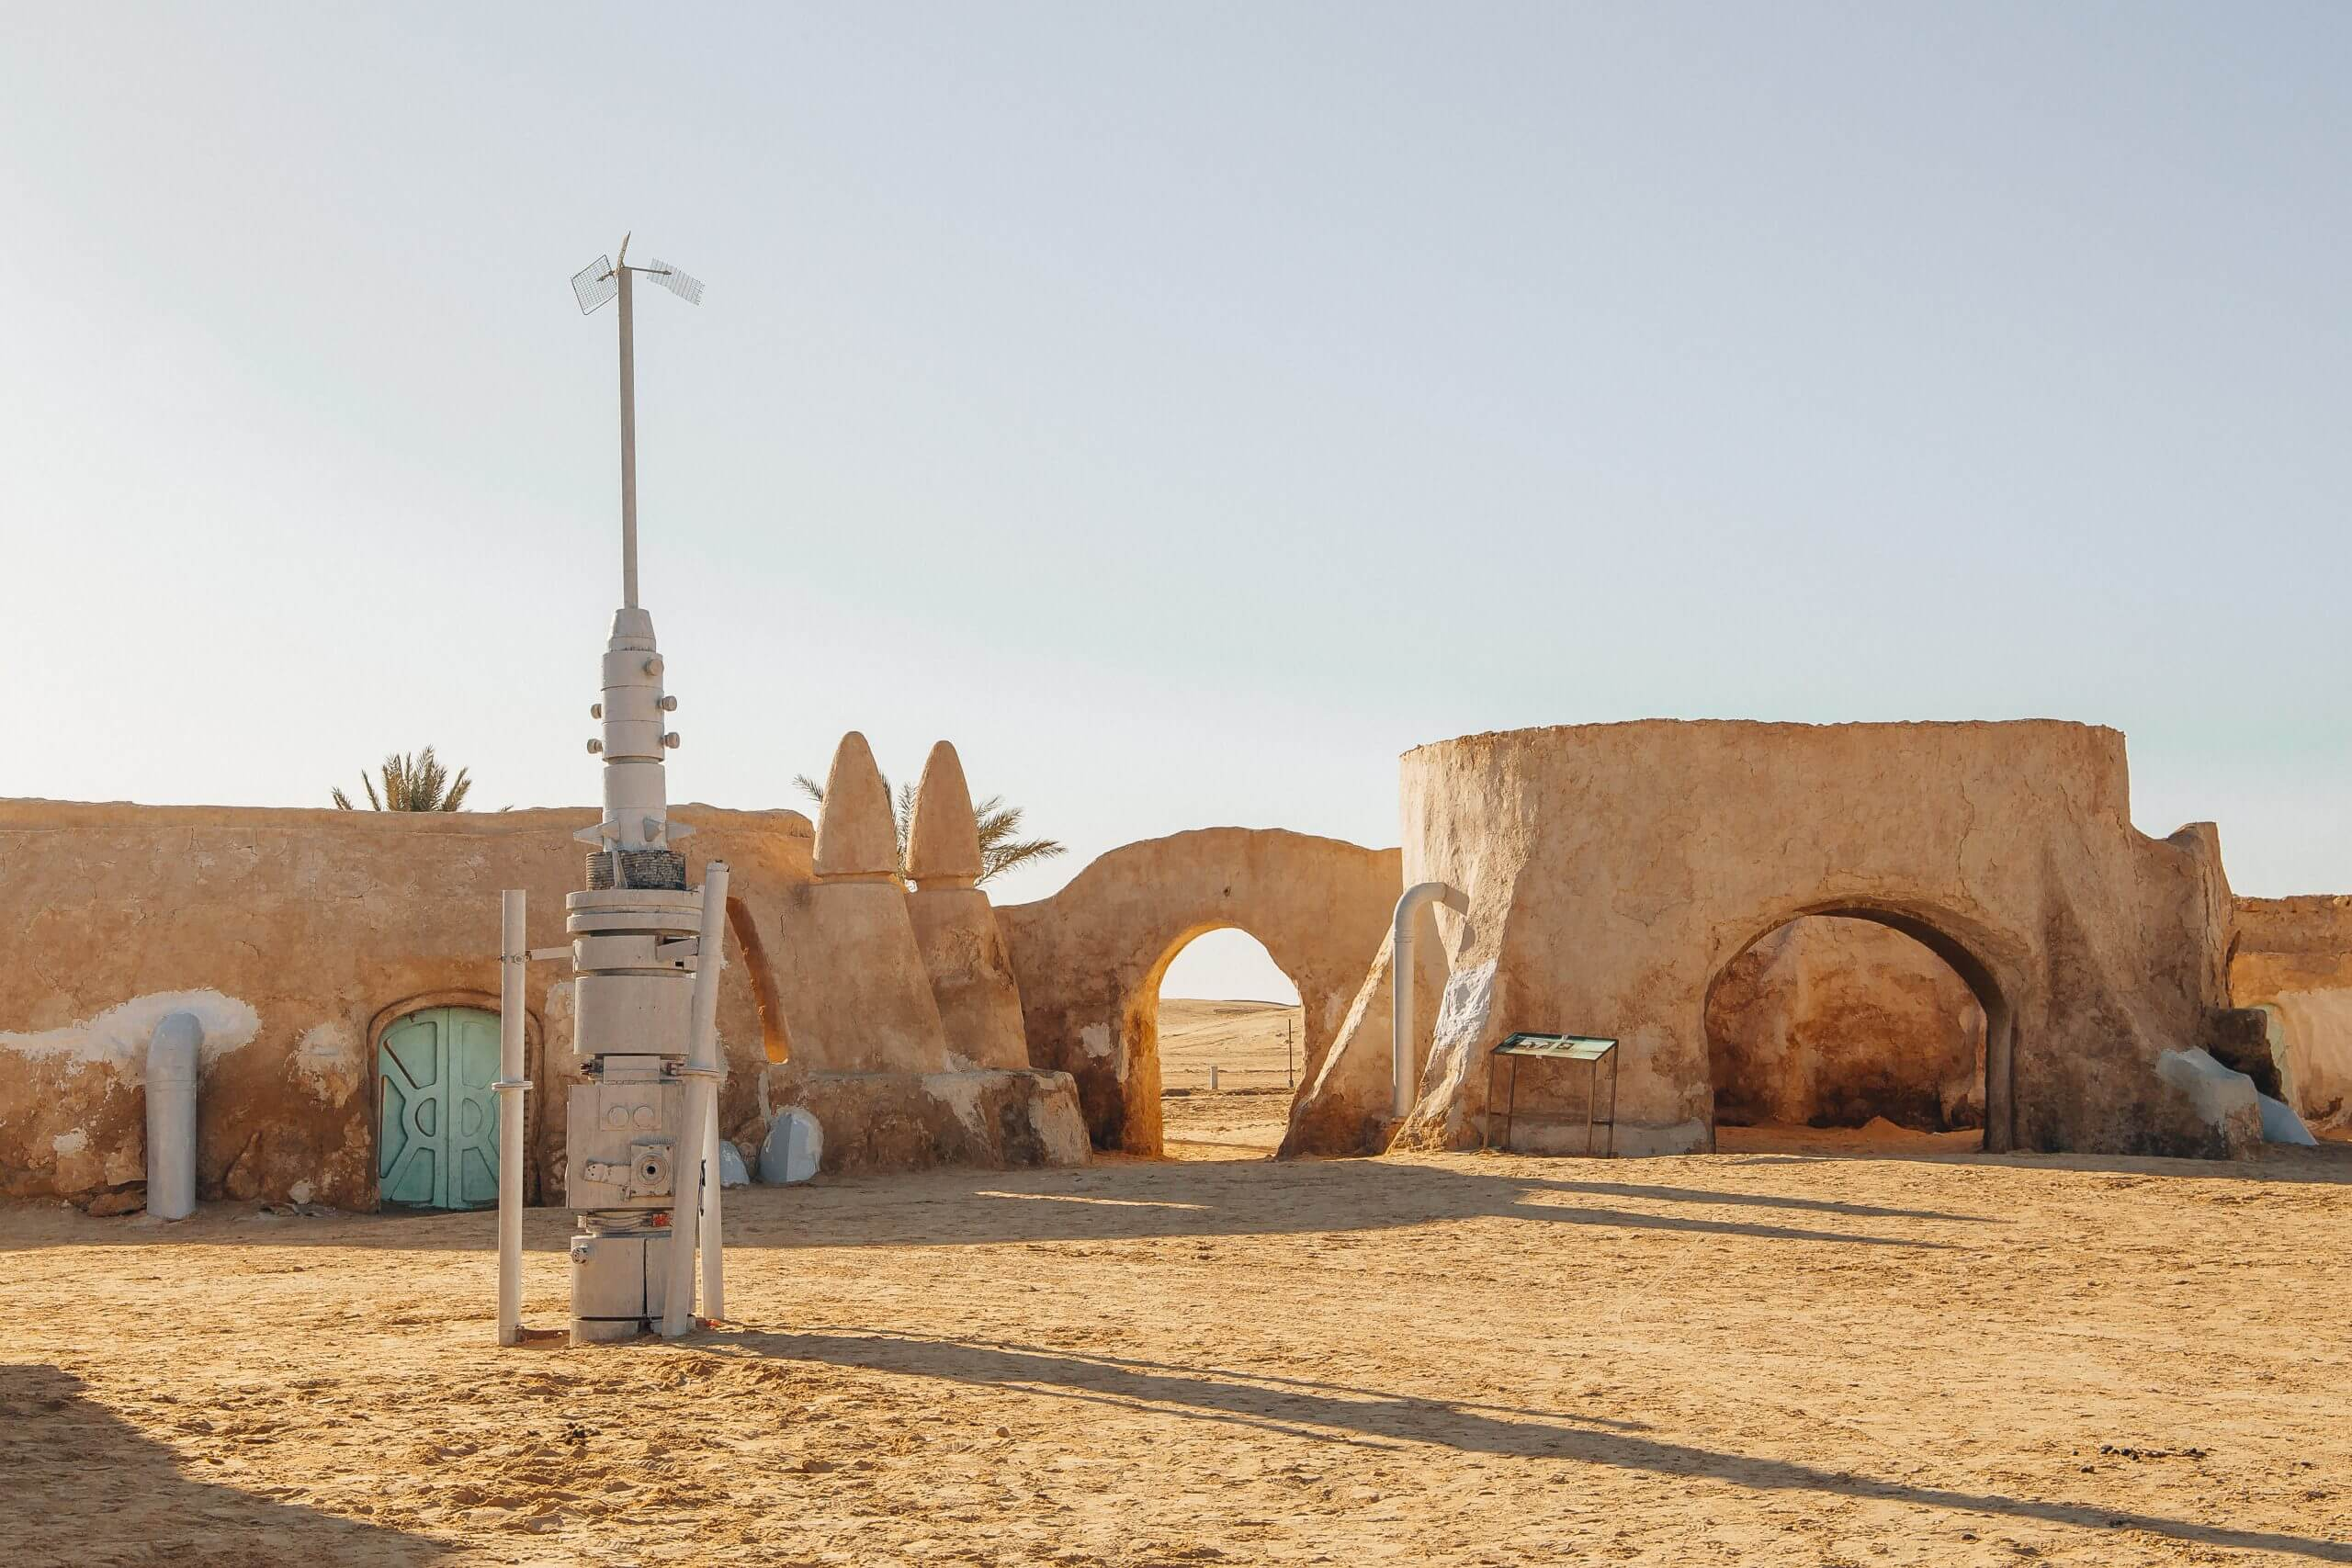 The Original Star Wars Movie Sets In Tunisia The Travely